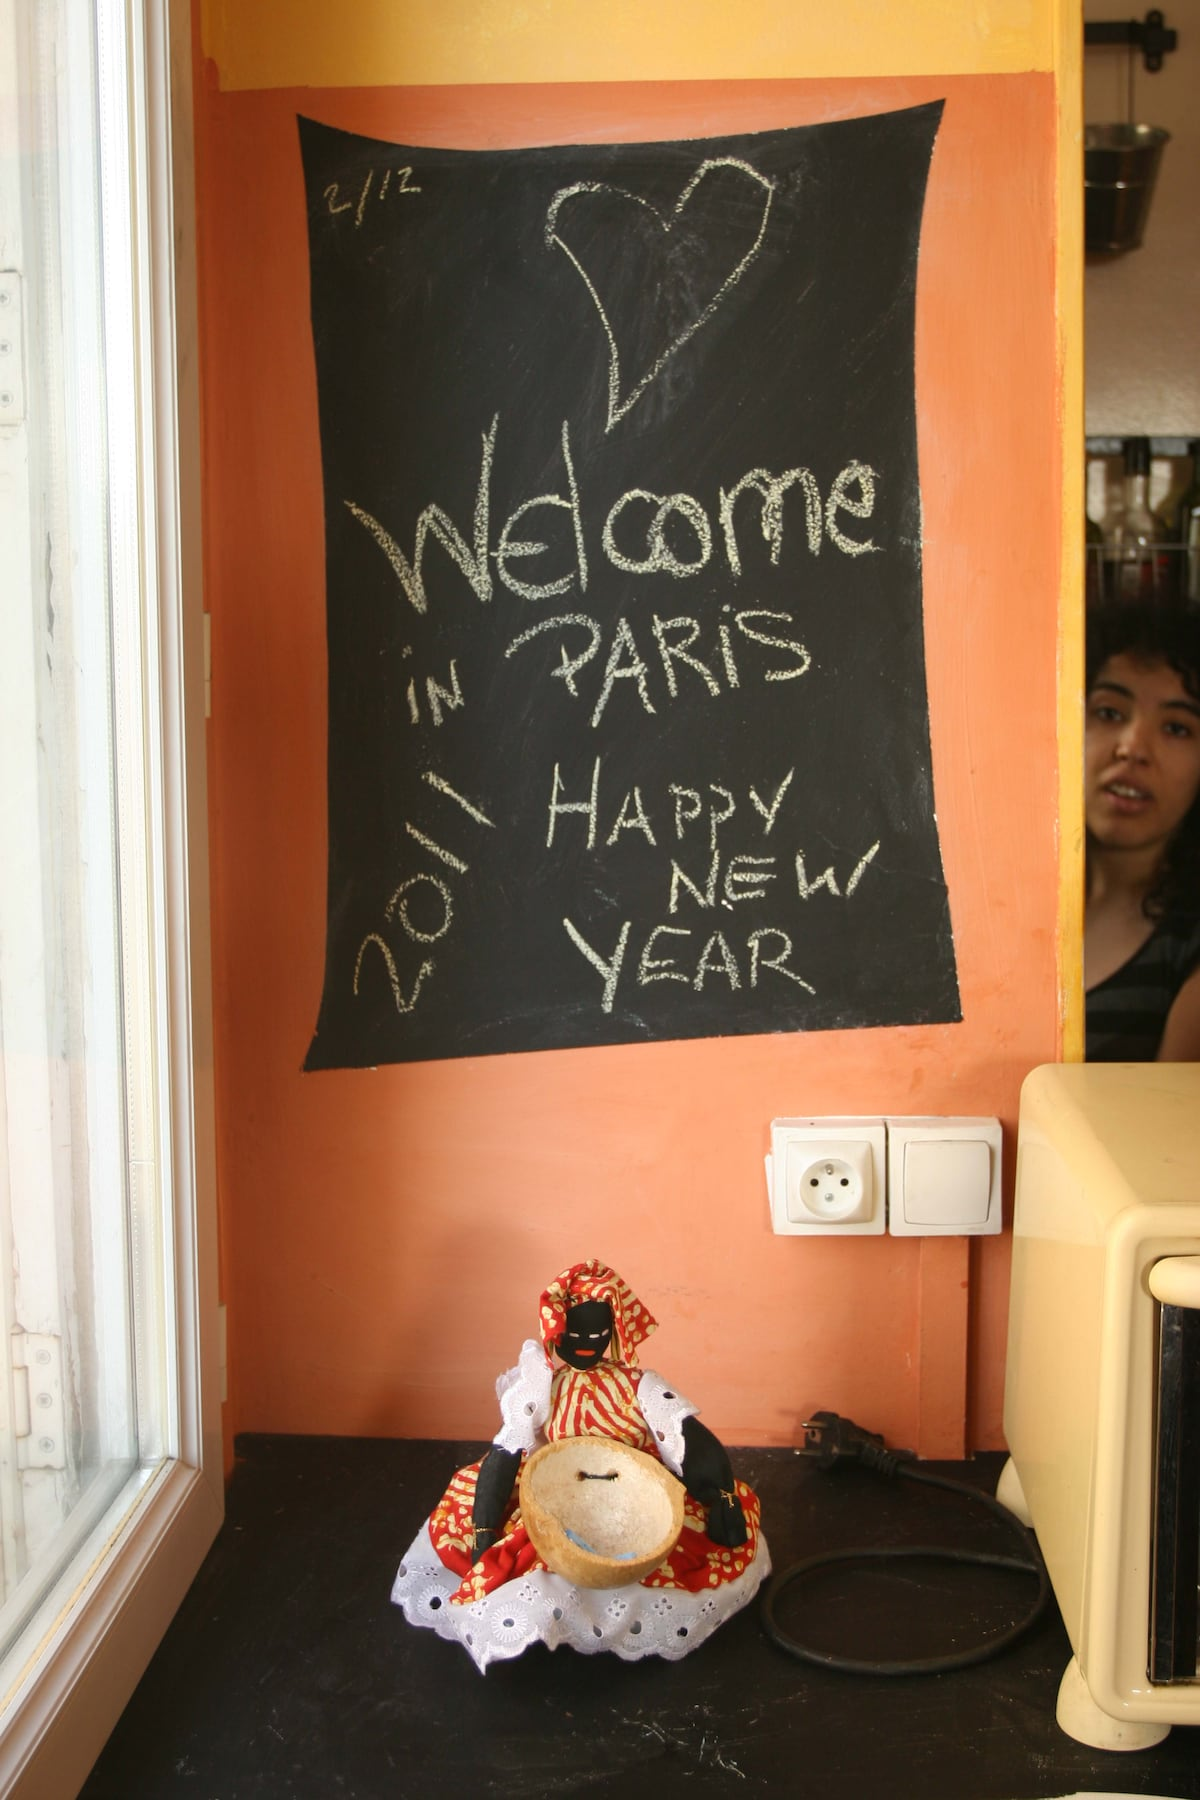 WELCOME TO YOUR WARM PARISIAN HOME